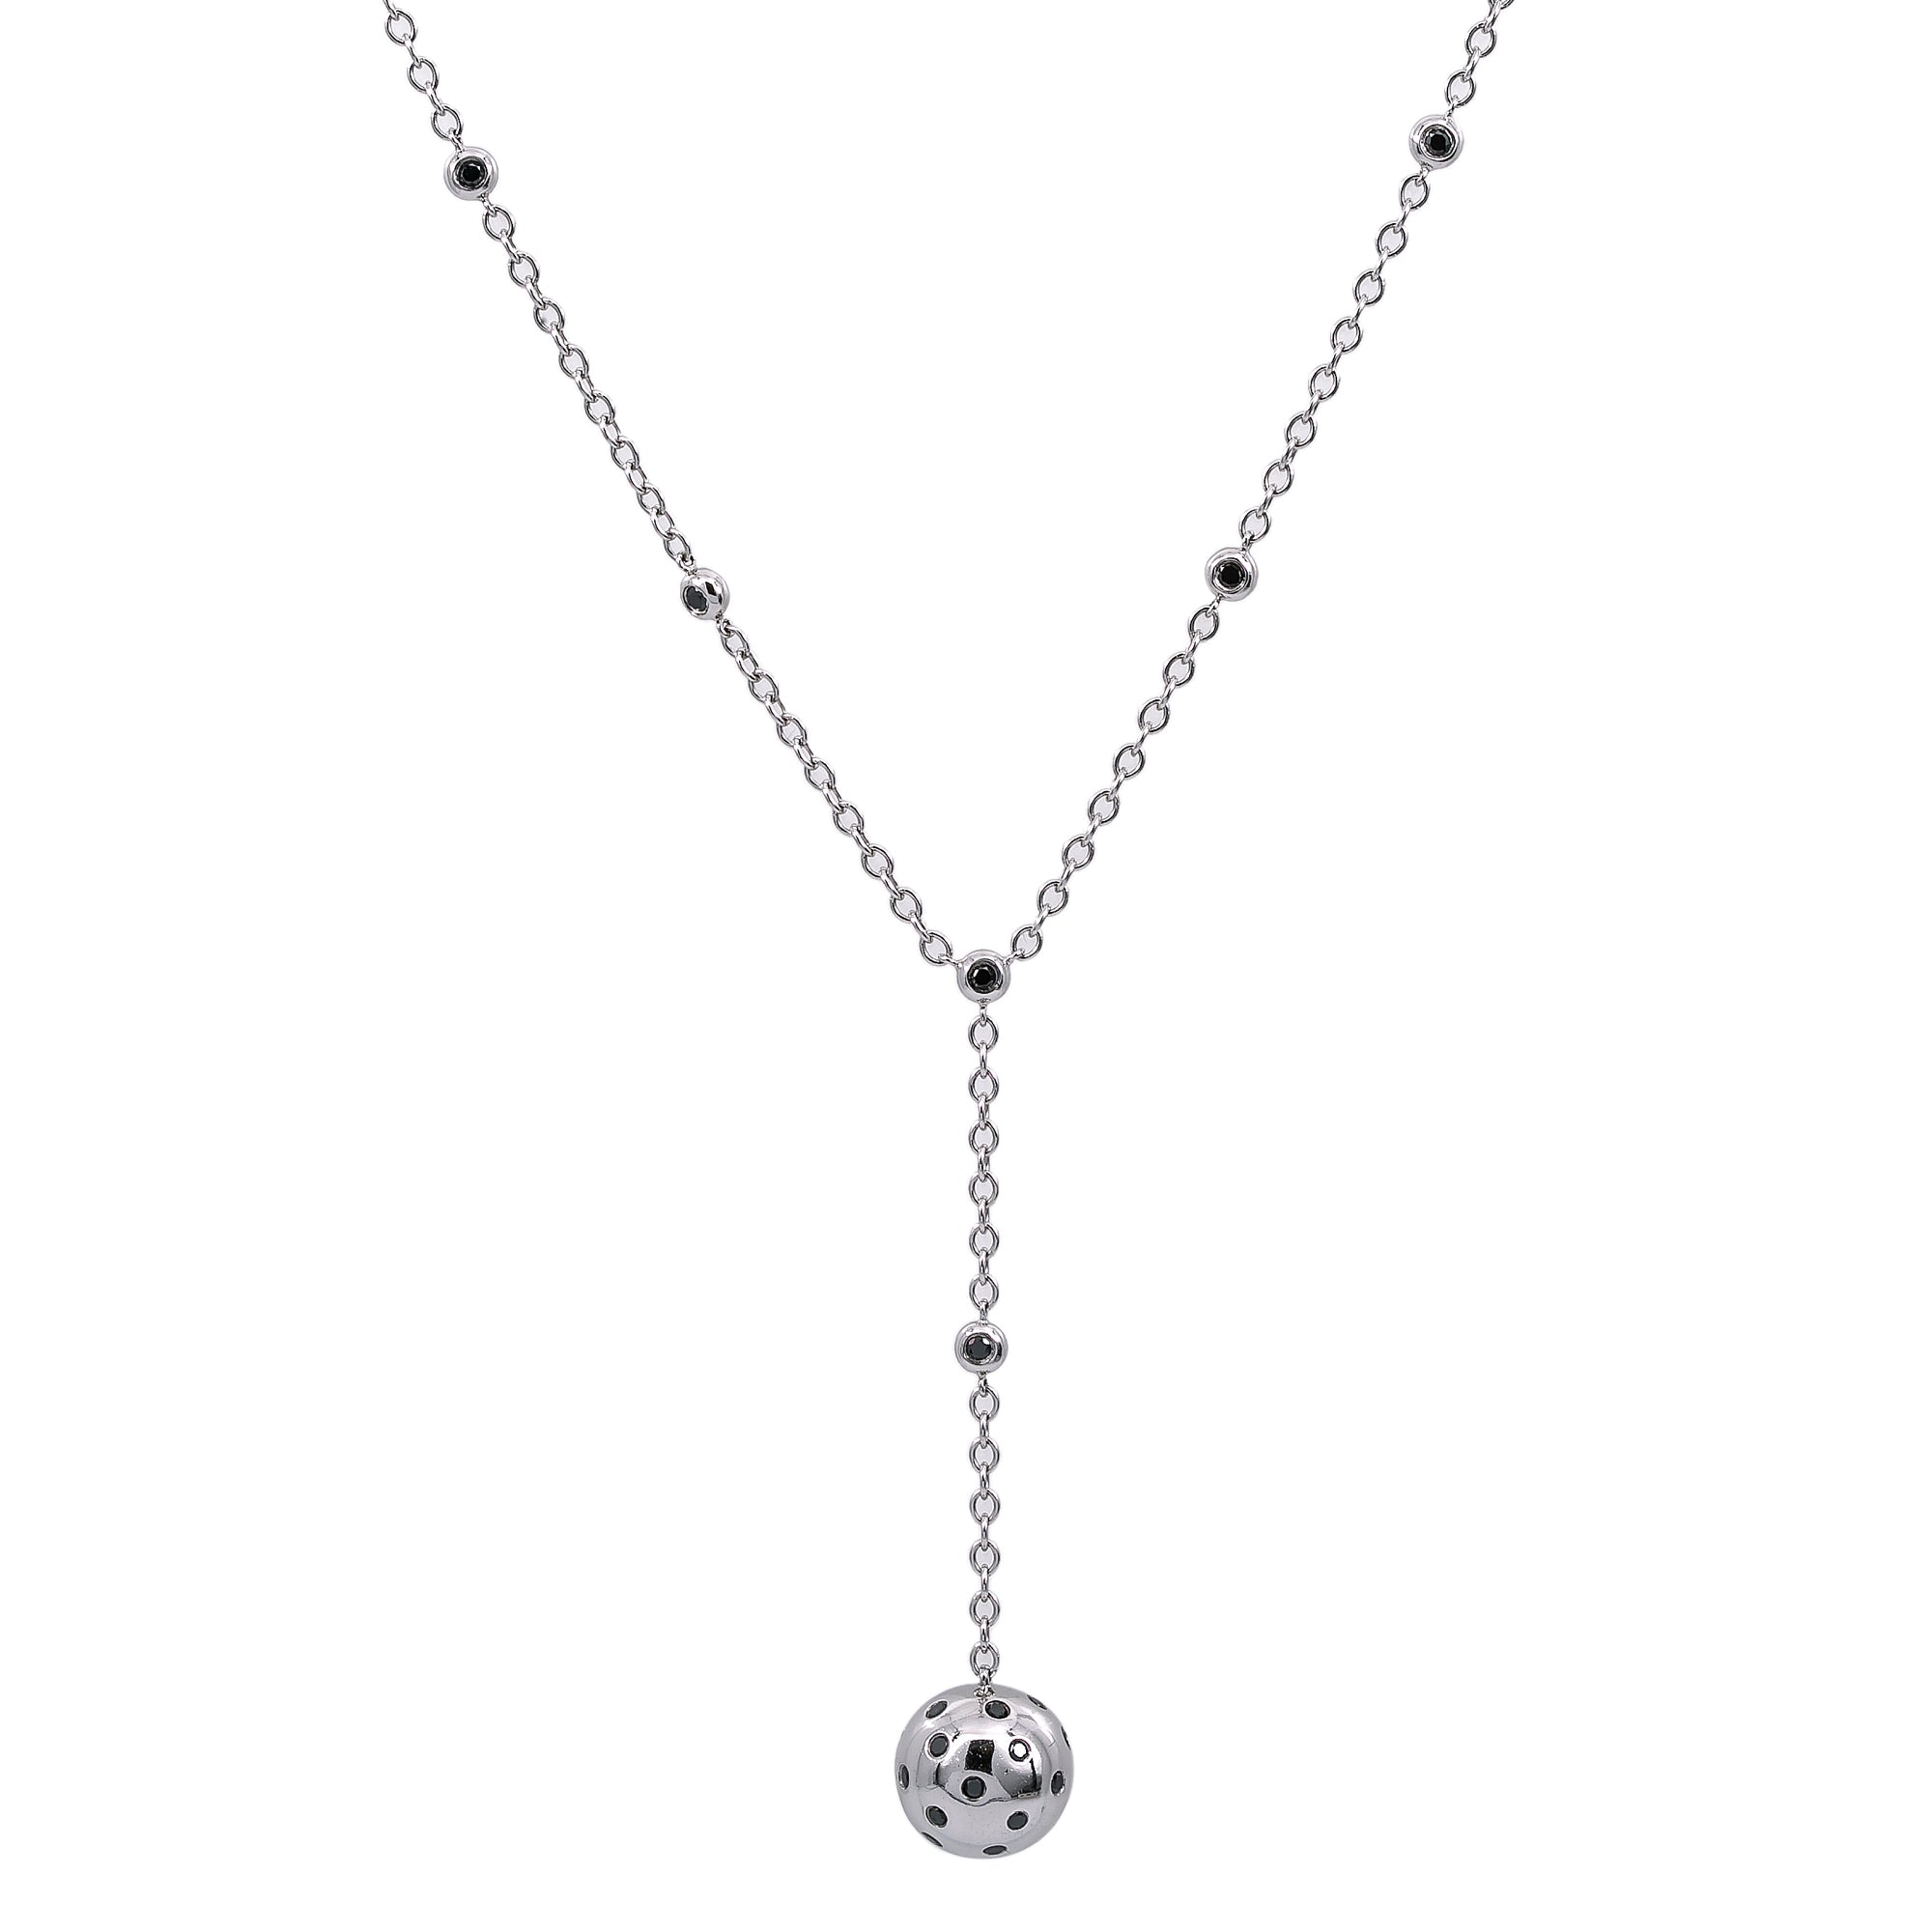 18K White Gold Women's Necklace, 20